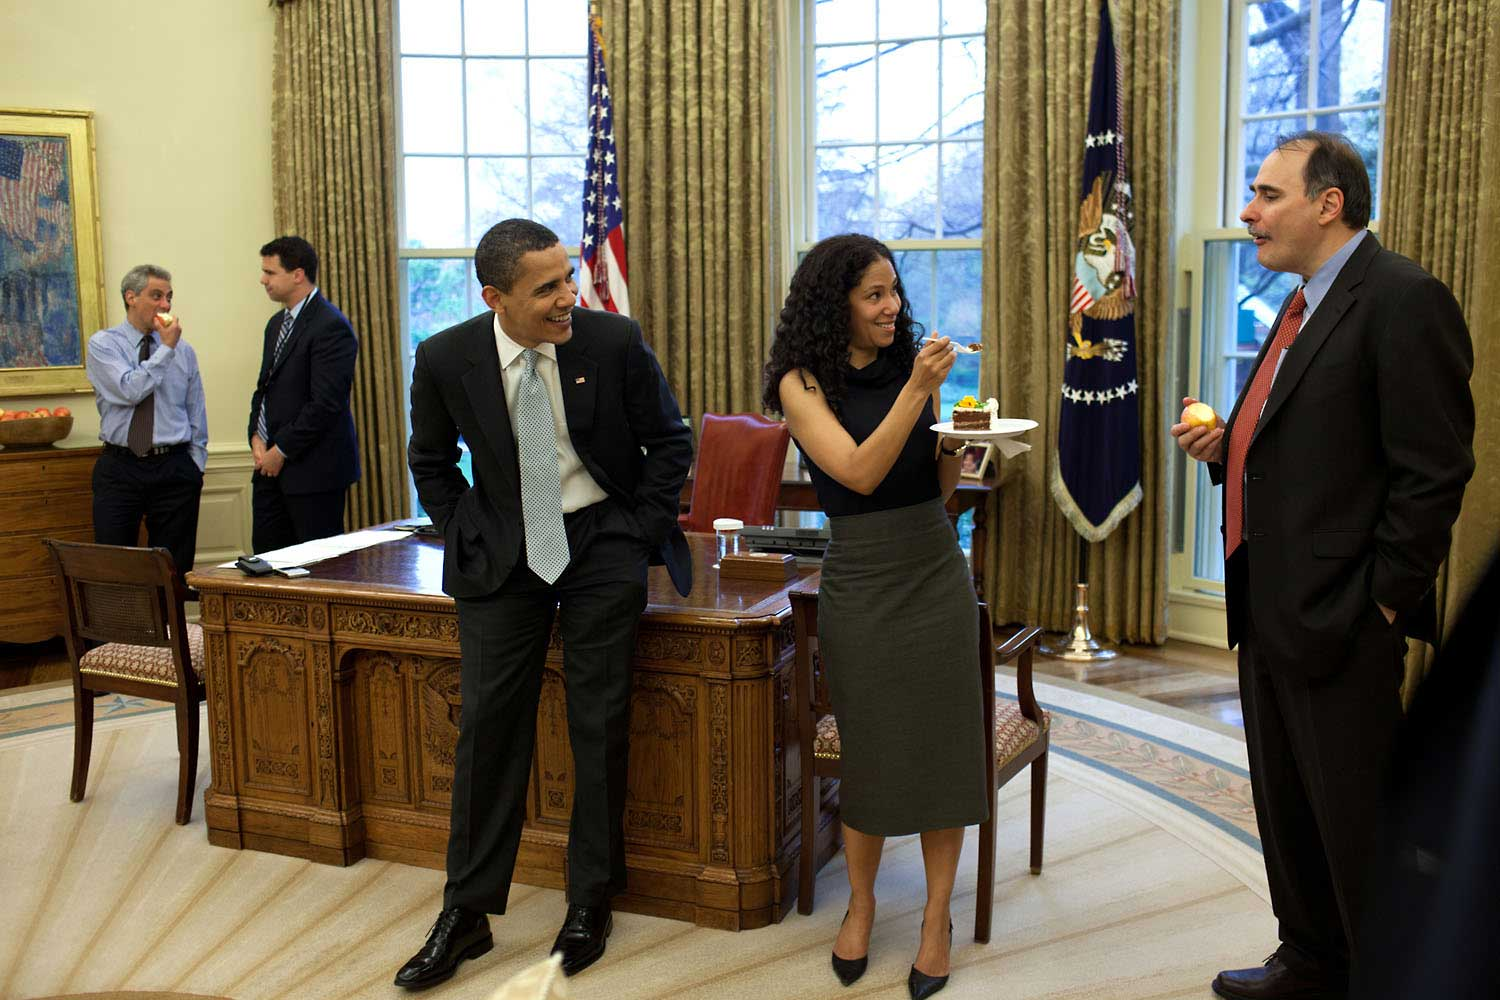 Deputy chief of staff Mona Sutphen jokingly offers a piece of birthday cake to senior advisor David Axelrod as the President watches amusingly in the Oval Office, April 15, 2009. The party was held to commemorate senior advisor Pete Rouse's birthday.